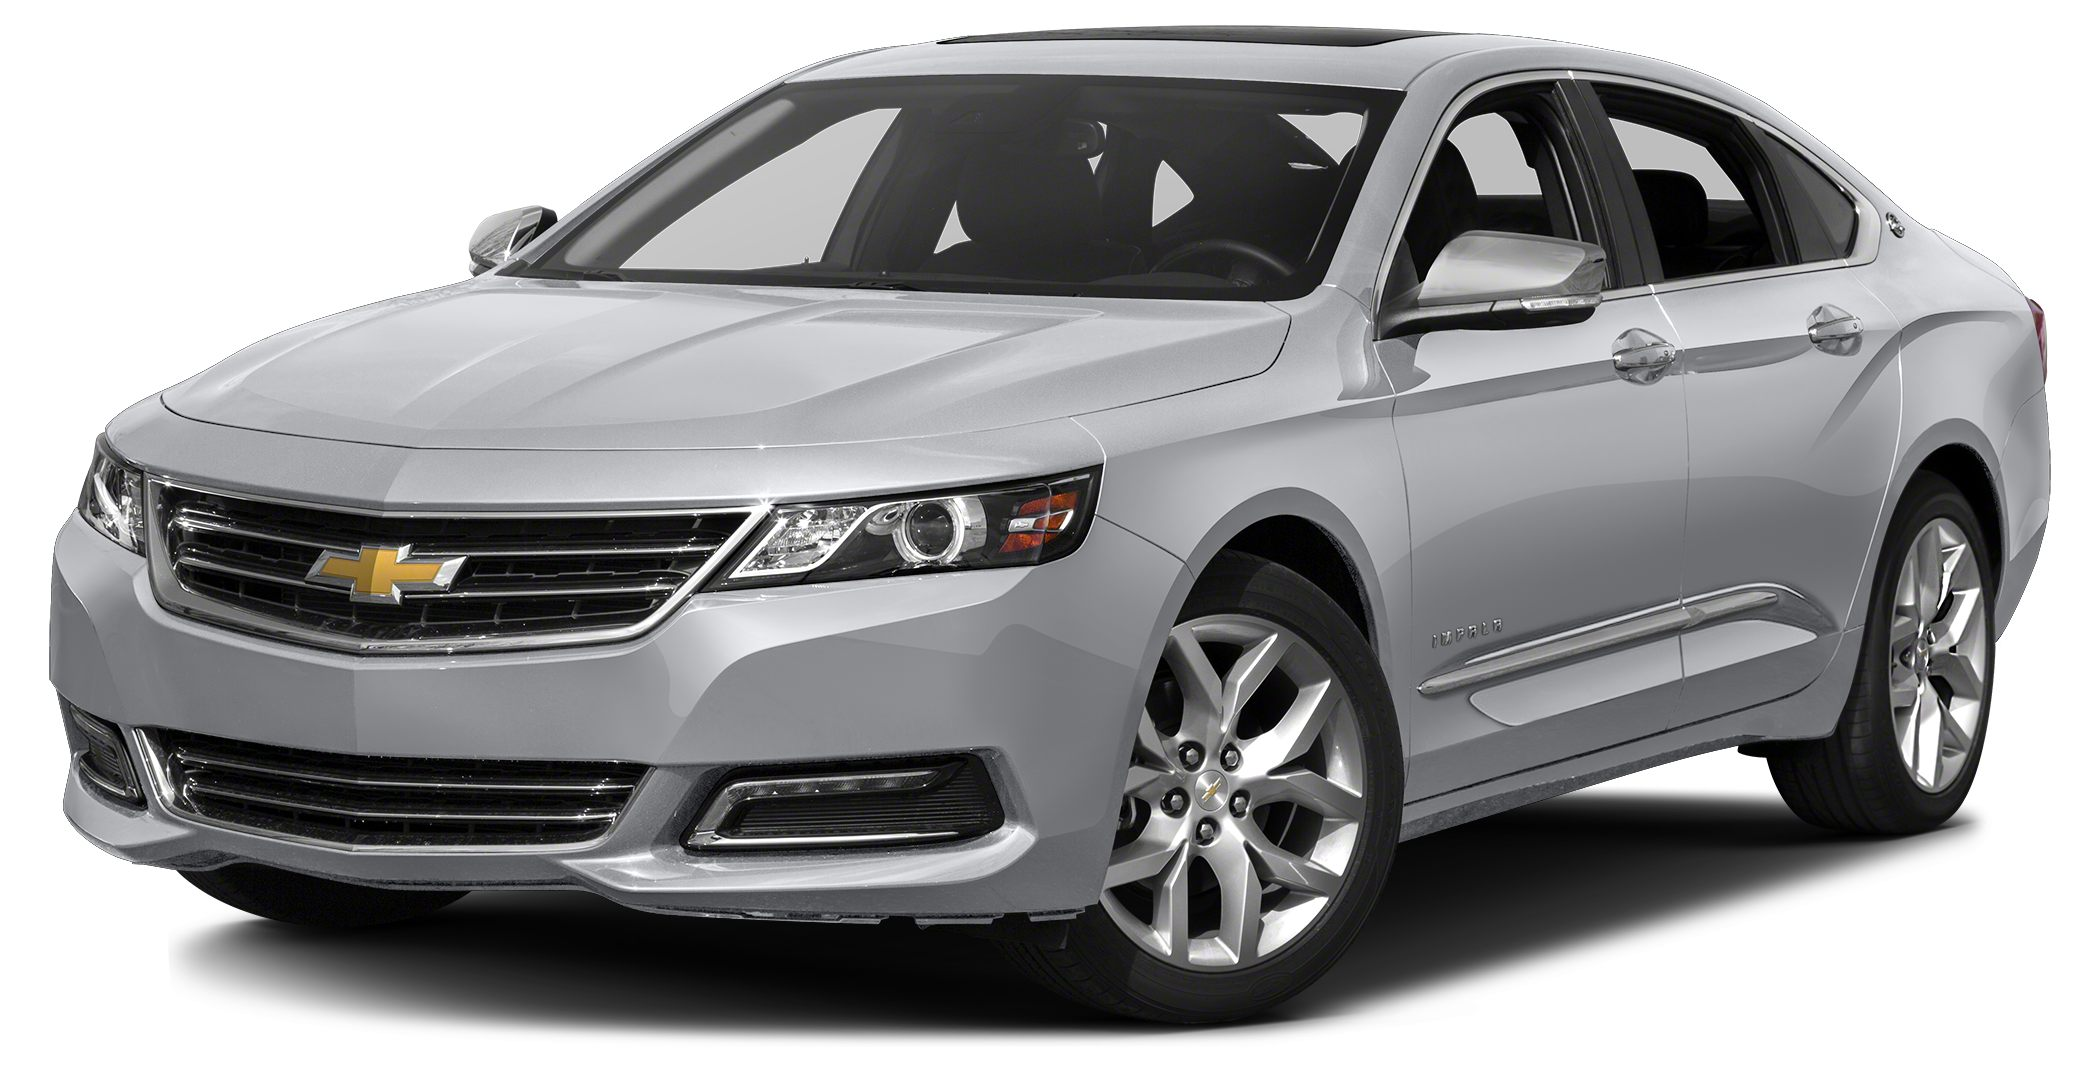 2016 Chevrolet Impala LTZ w2LZ In a class by itself Join us at Kris Brown Chevrolet Buick GMC H